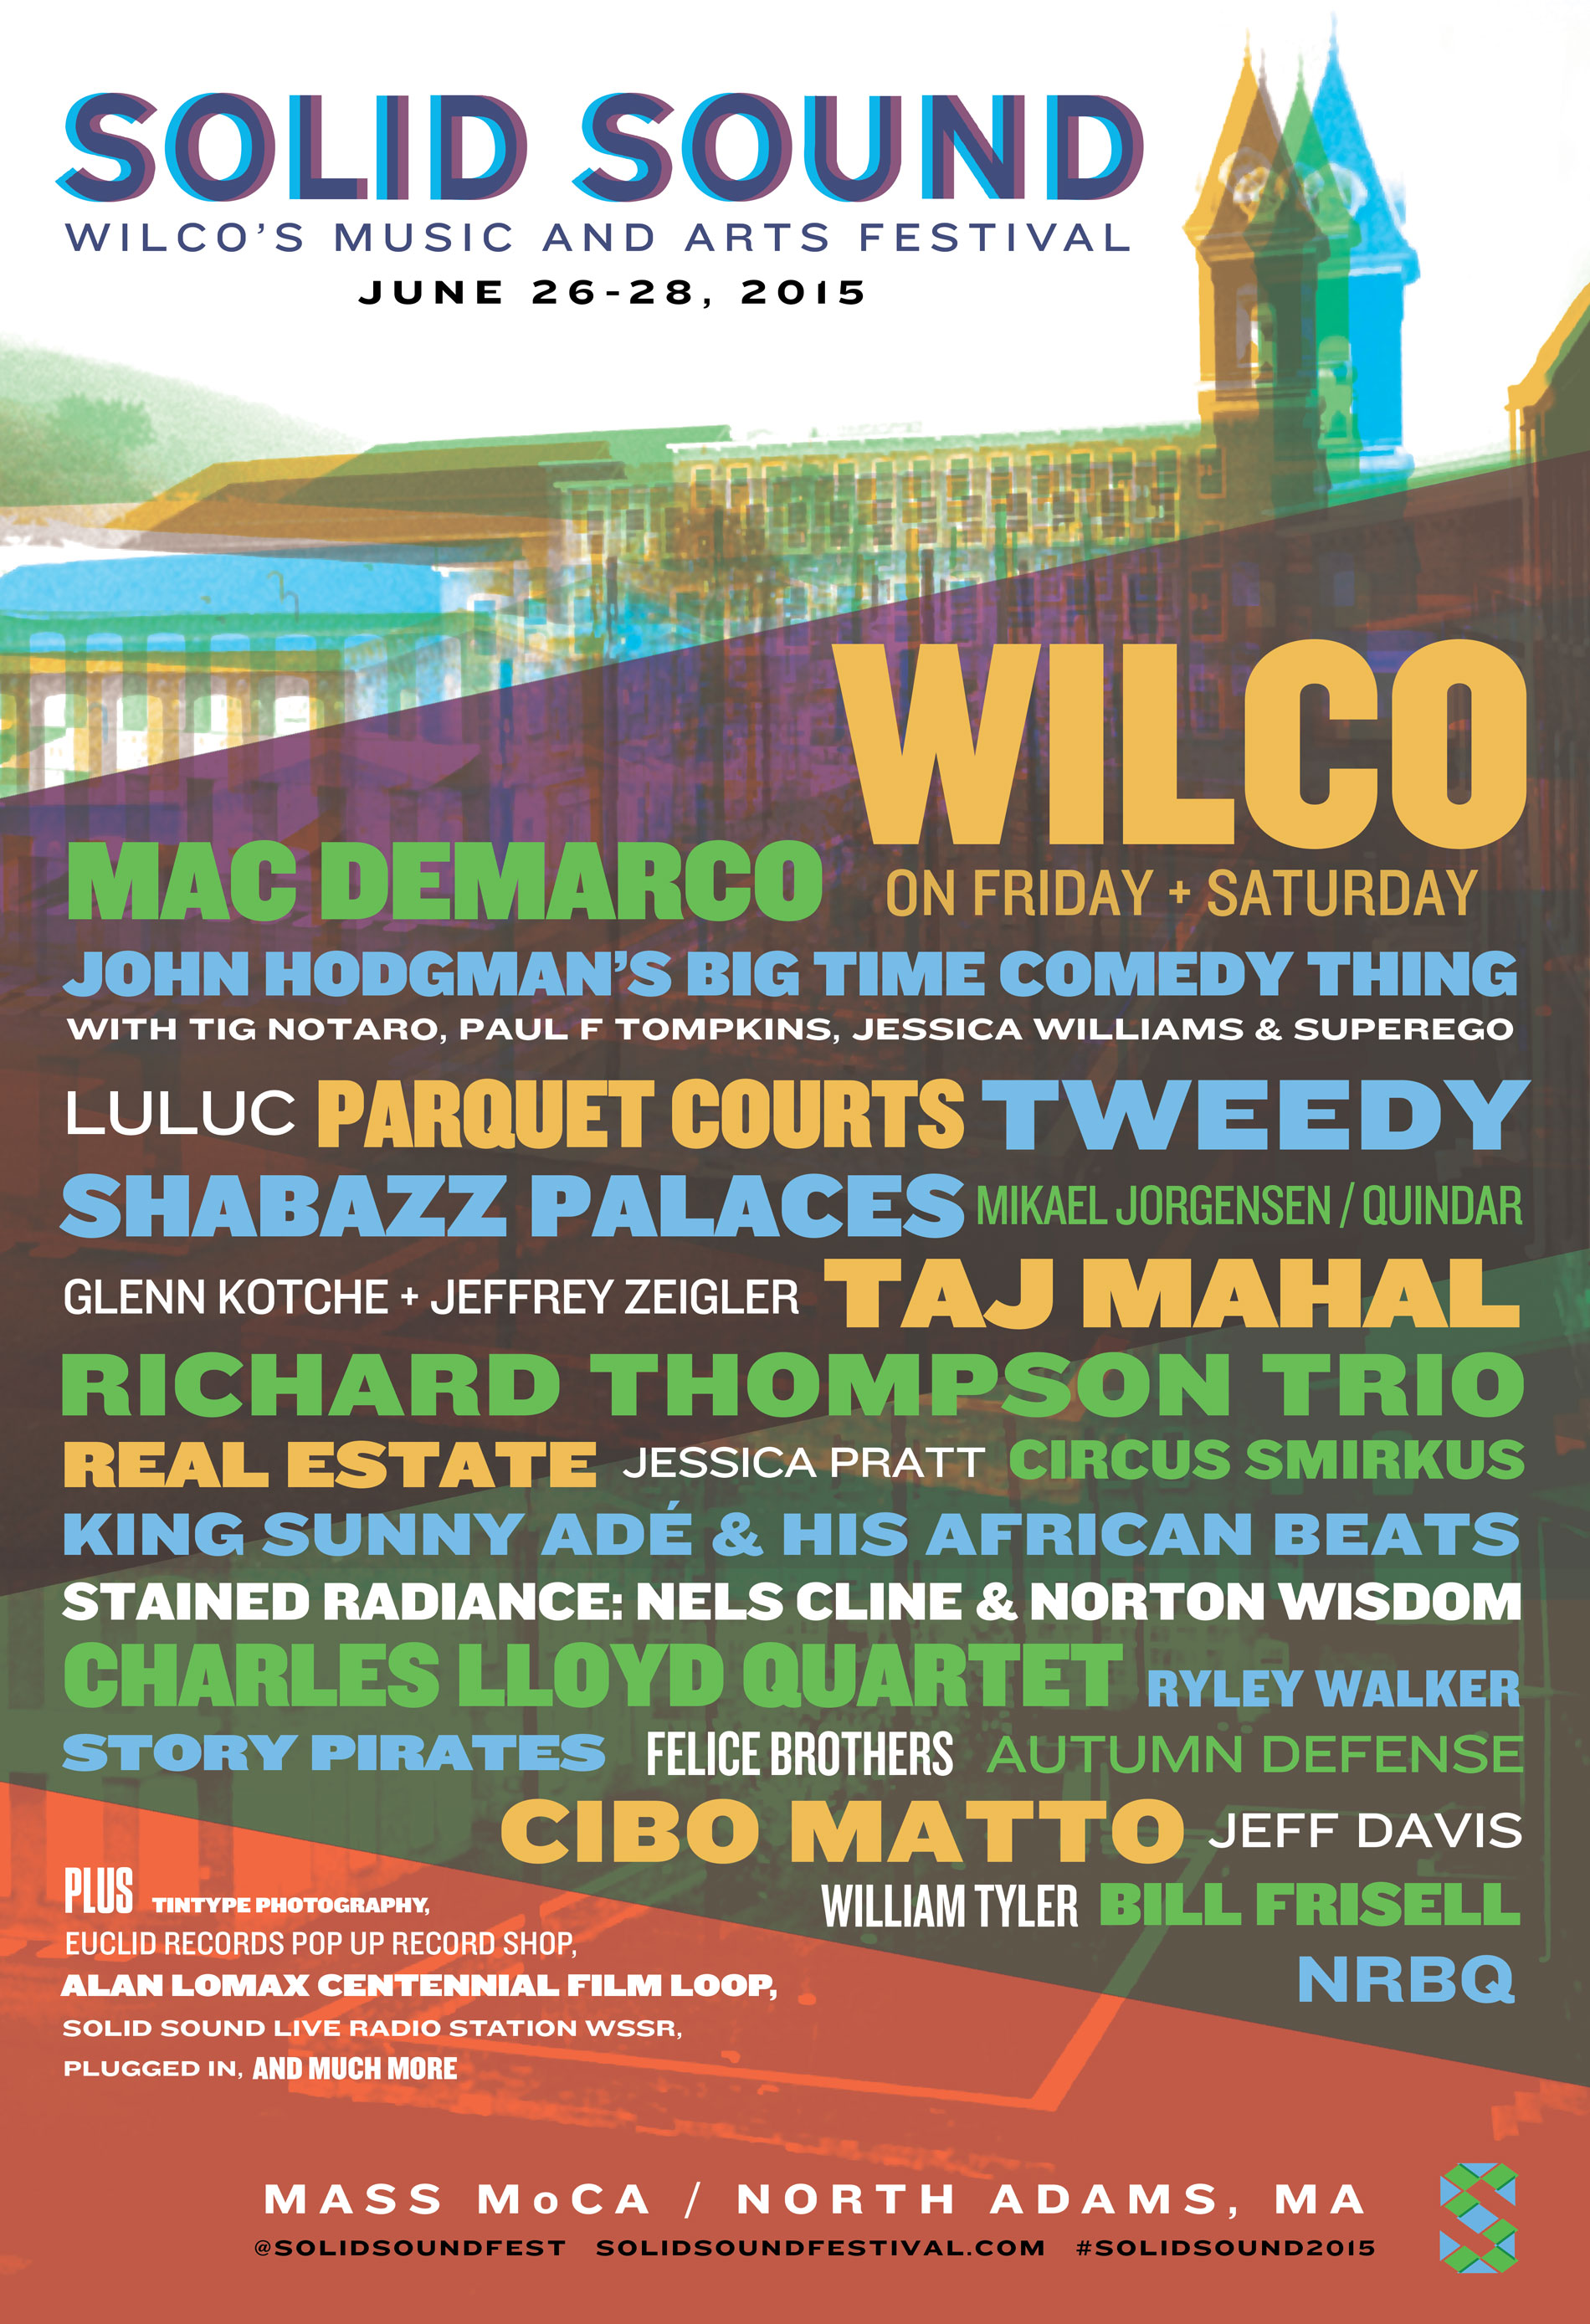 Wilco Unplugs for Solid Sound Friday | Grateful Web